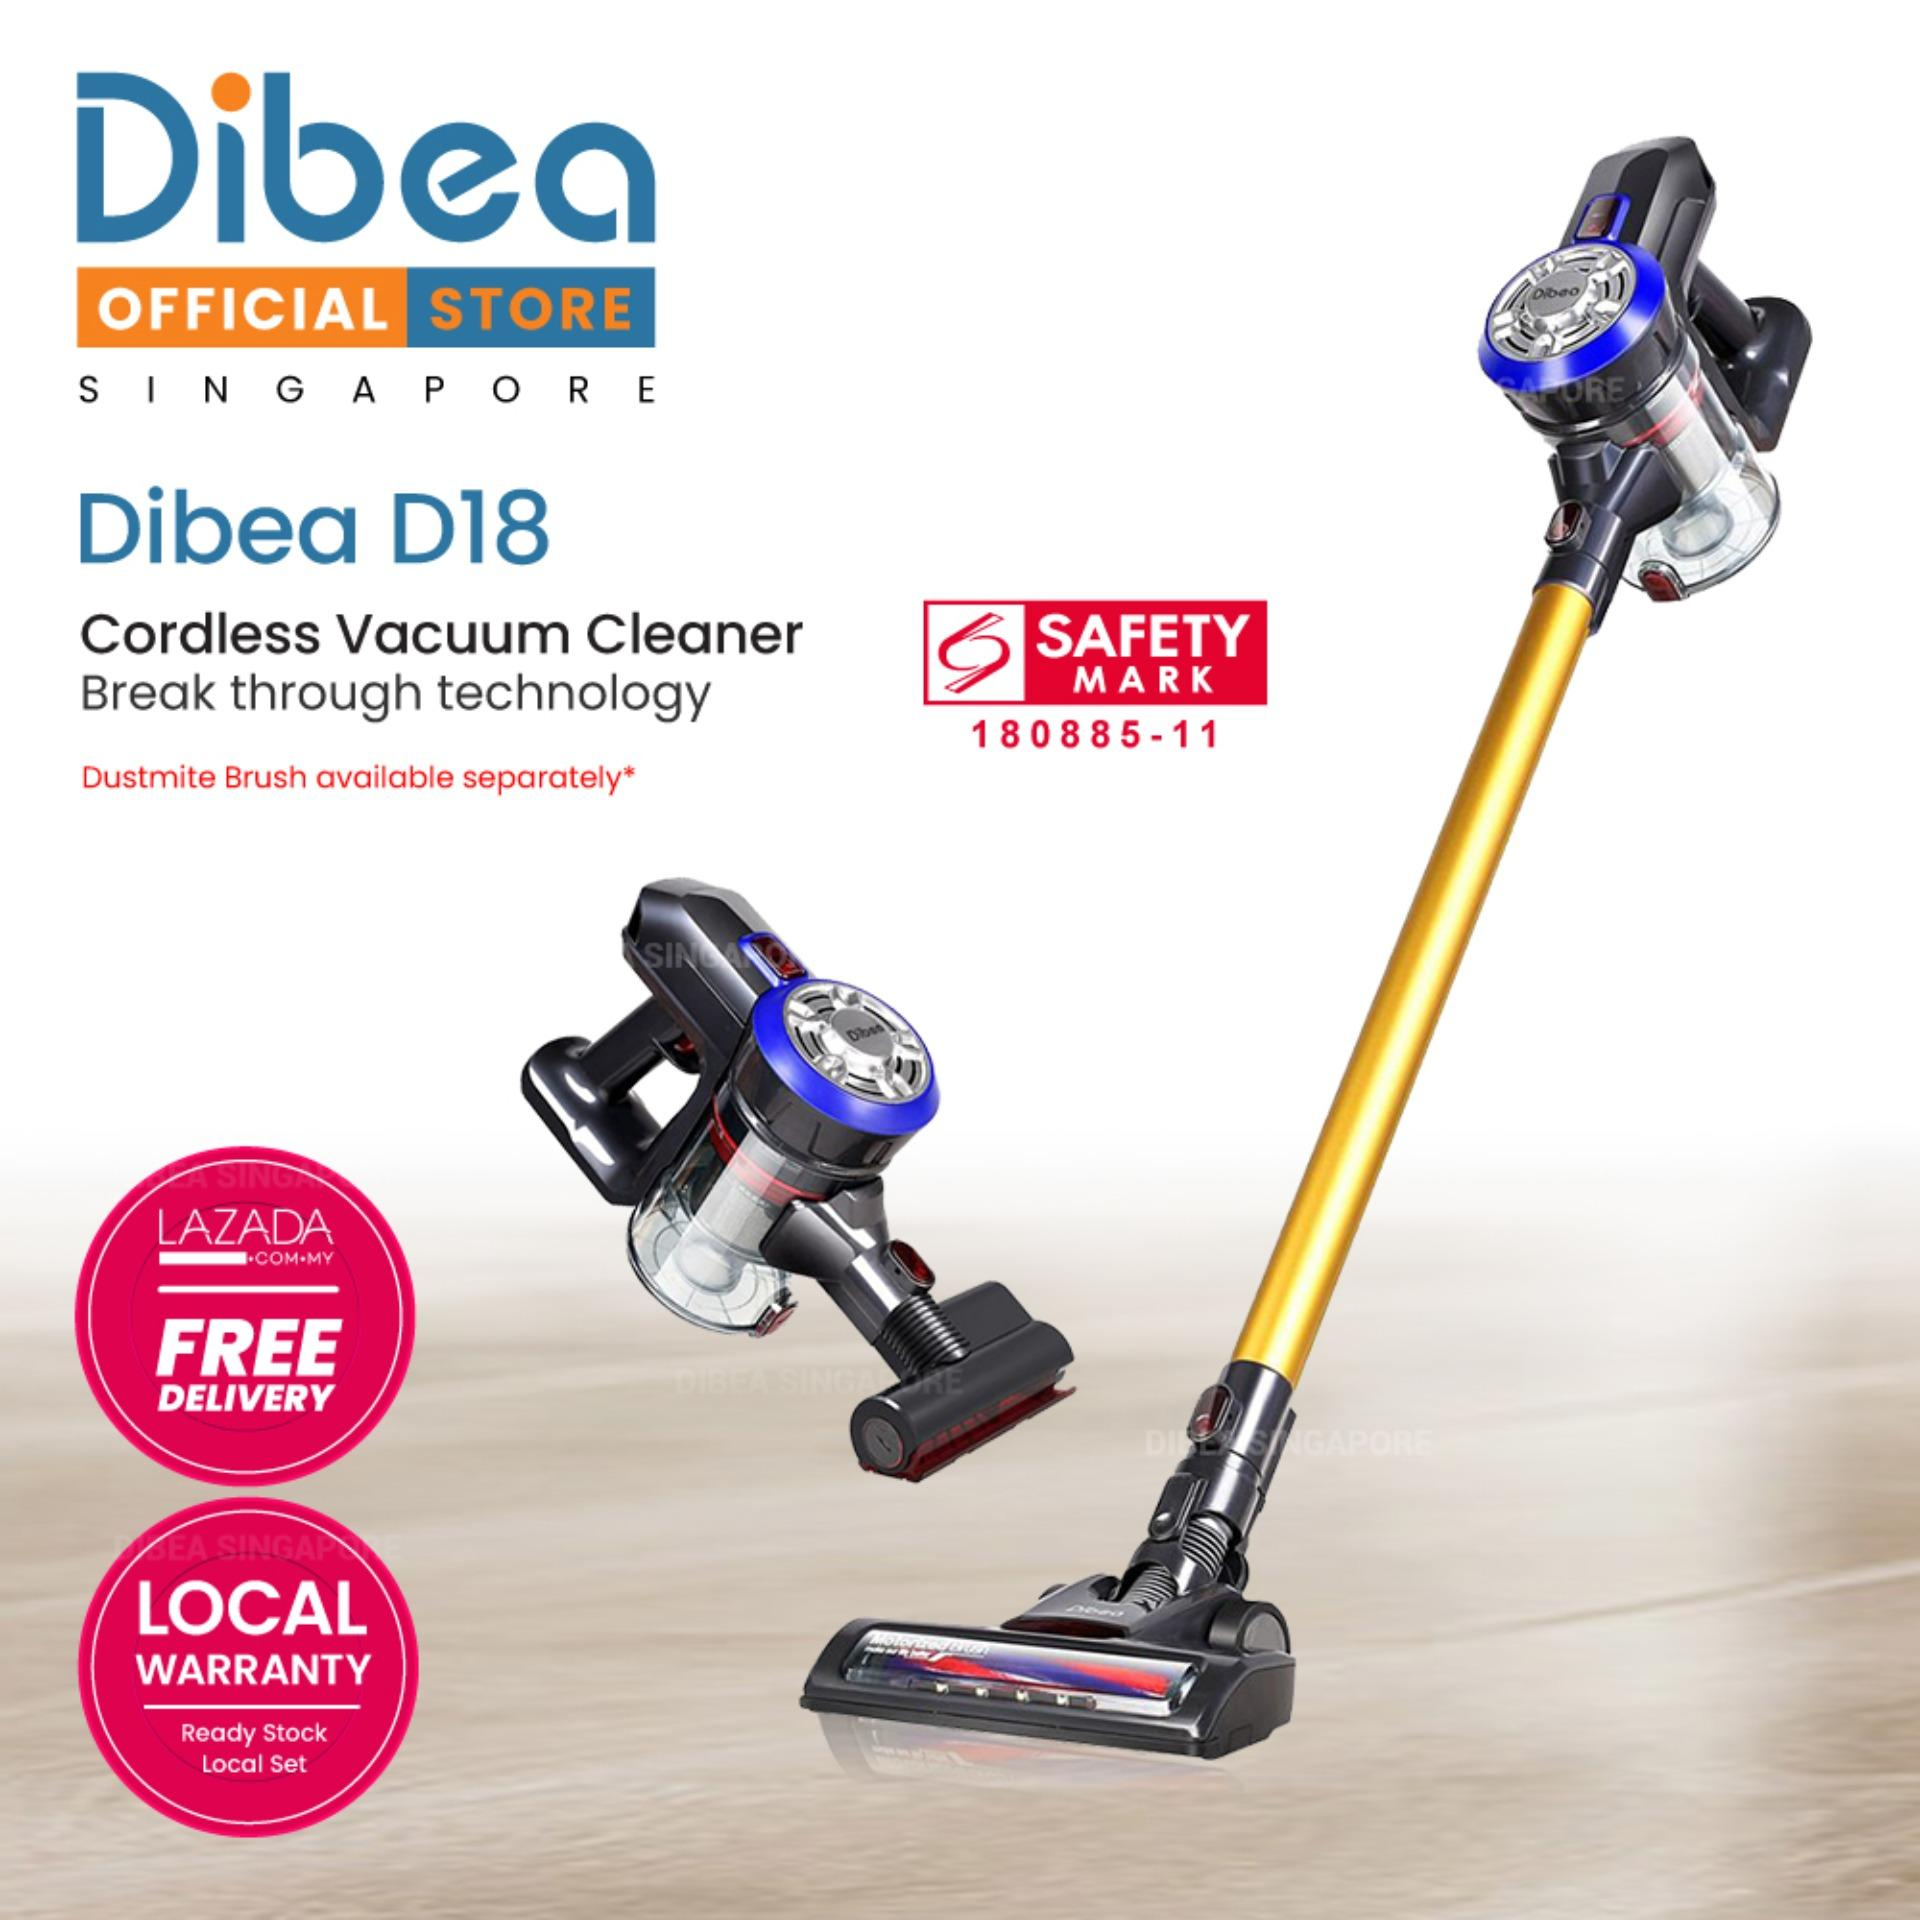 [official Dibea Singapore] Dibea D18 Cordless Vacuum Cleaner Handheld Stick Led Light By Dibea Singapore Pte Ltd.